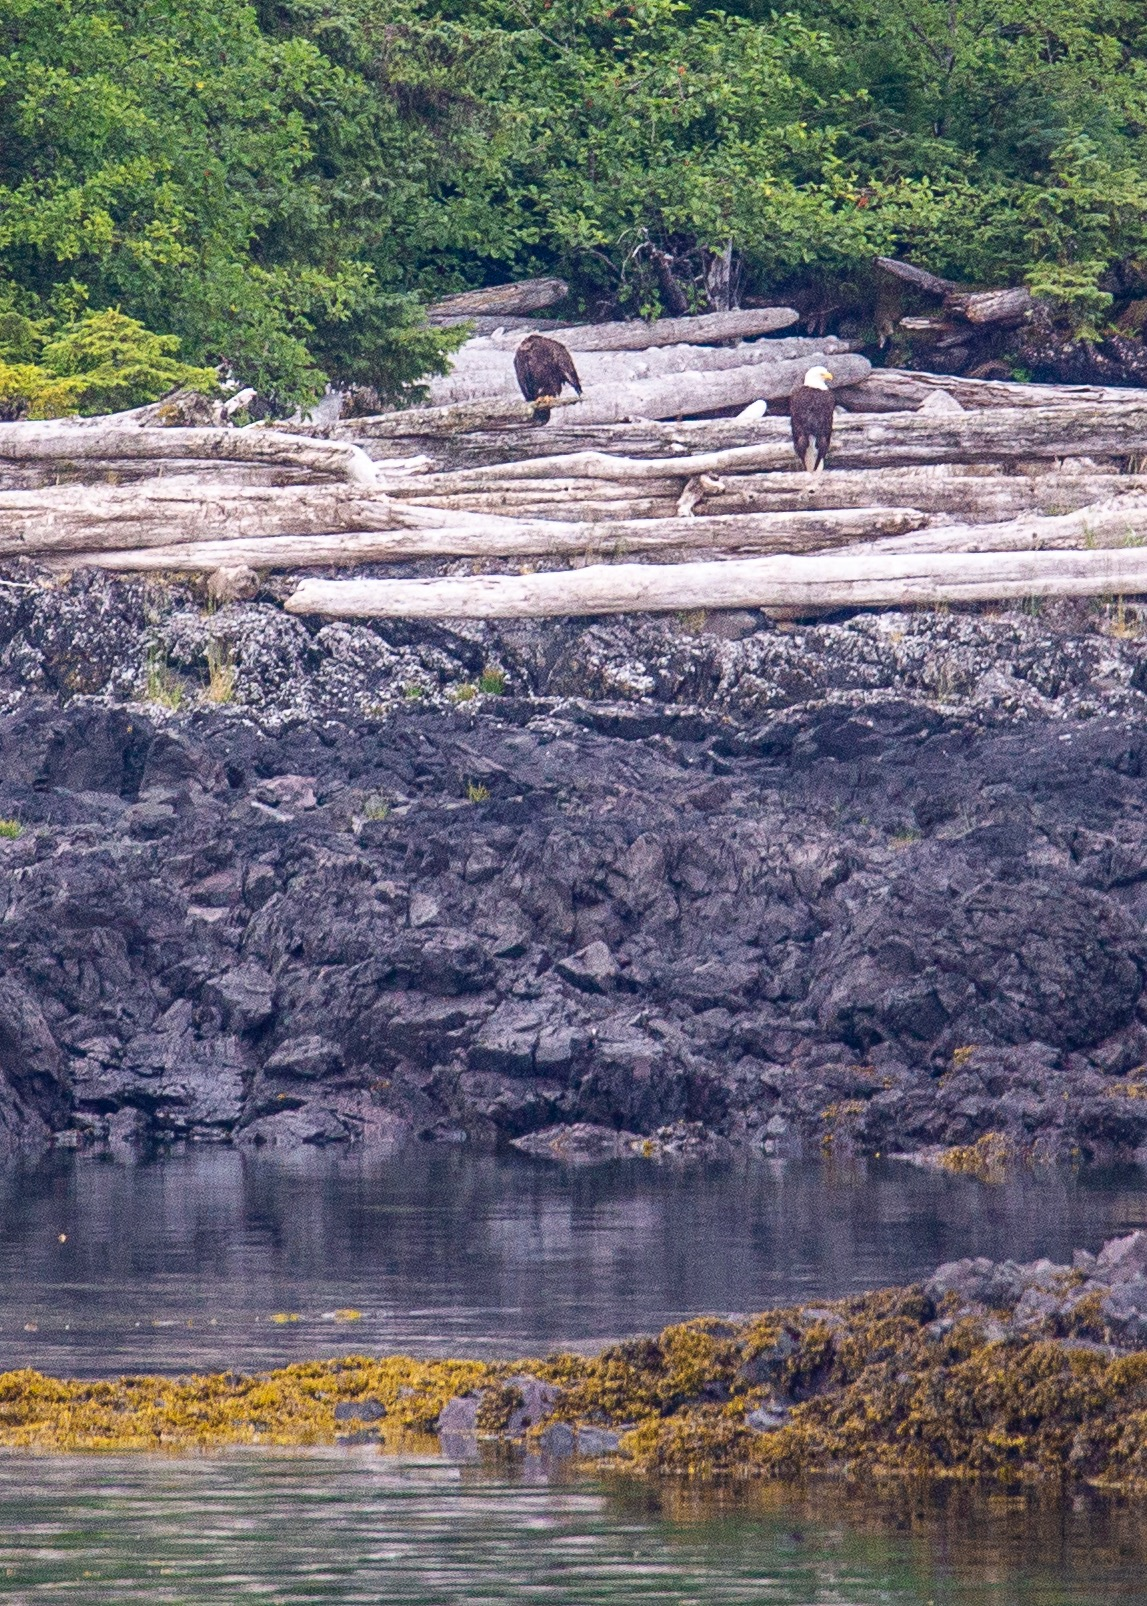 Bald eagles on the shore.